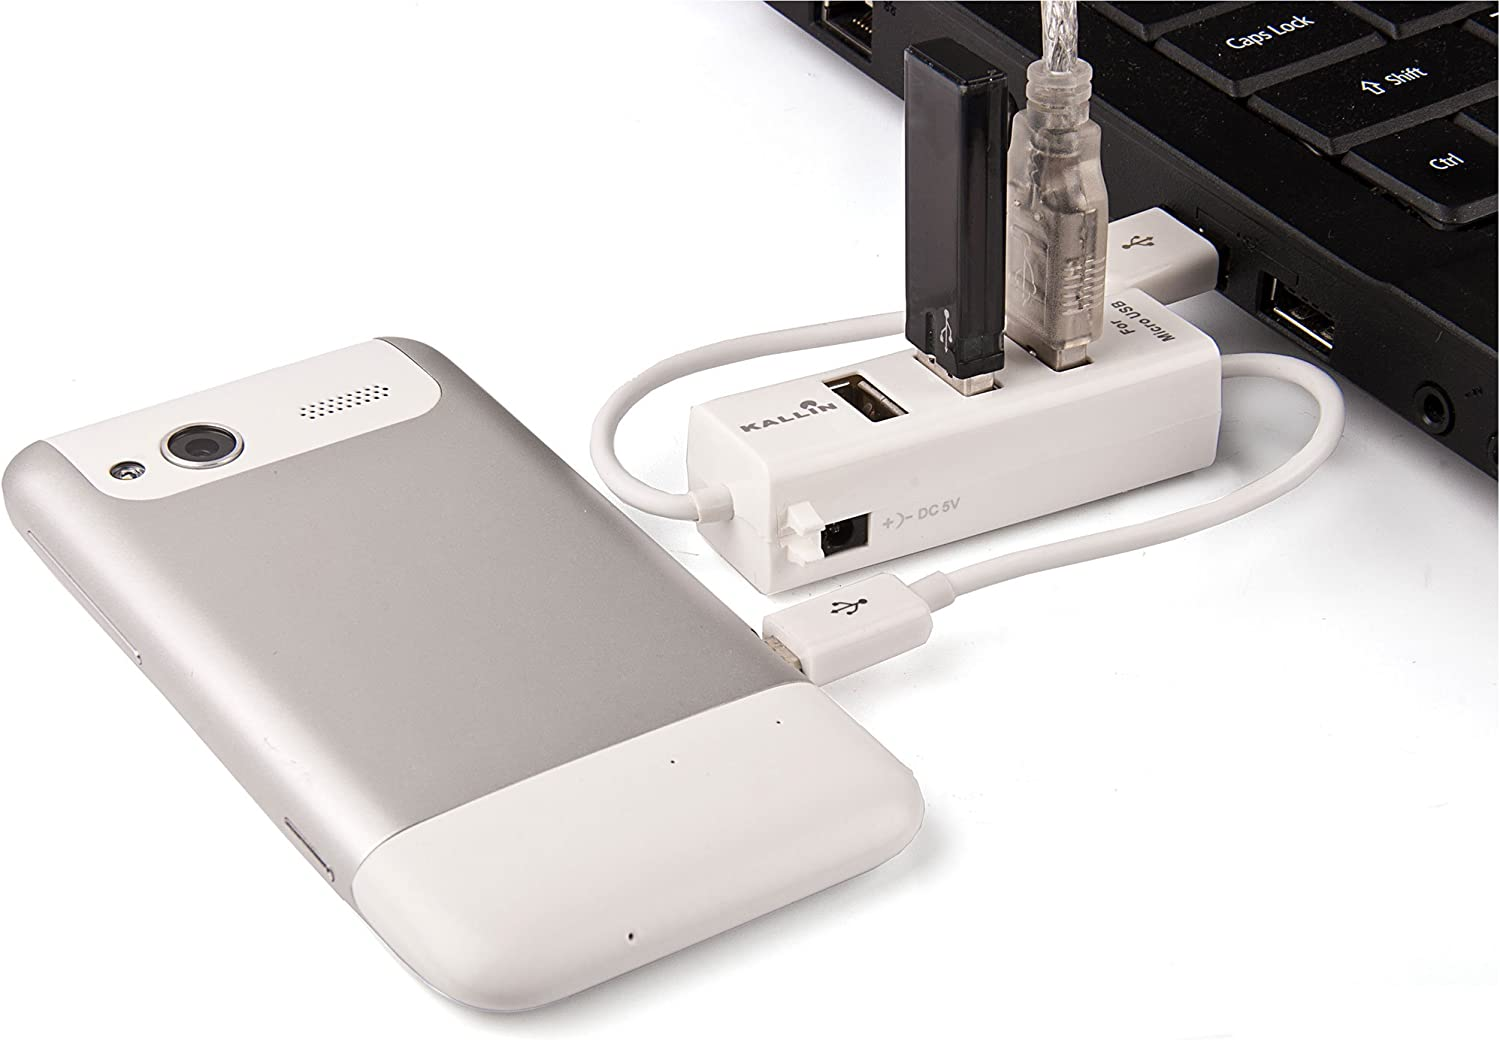 White 3.5mm Jack Earbud Earphones Miniature Mouse with Retractable Cord! MC966LL Desk Organizer Kit with White USB 2.0 3 Port HUB and x2 Golden Yellow Cable Organizers Professional Apple Macbook Air MC956LL